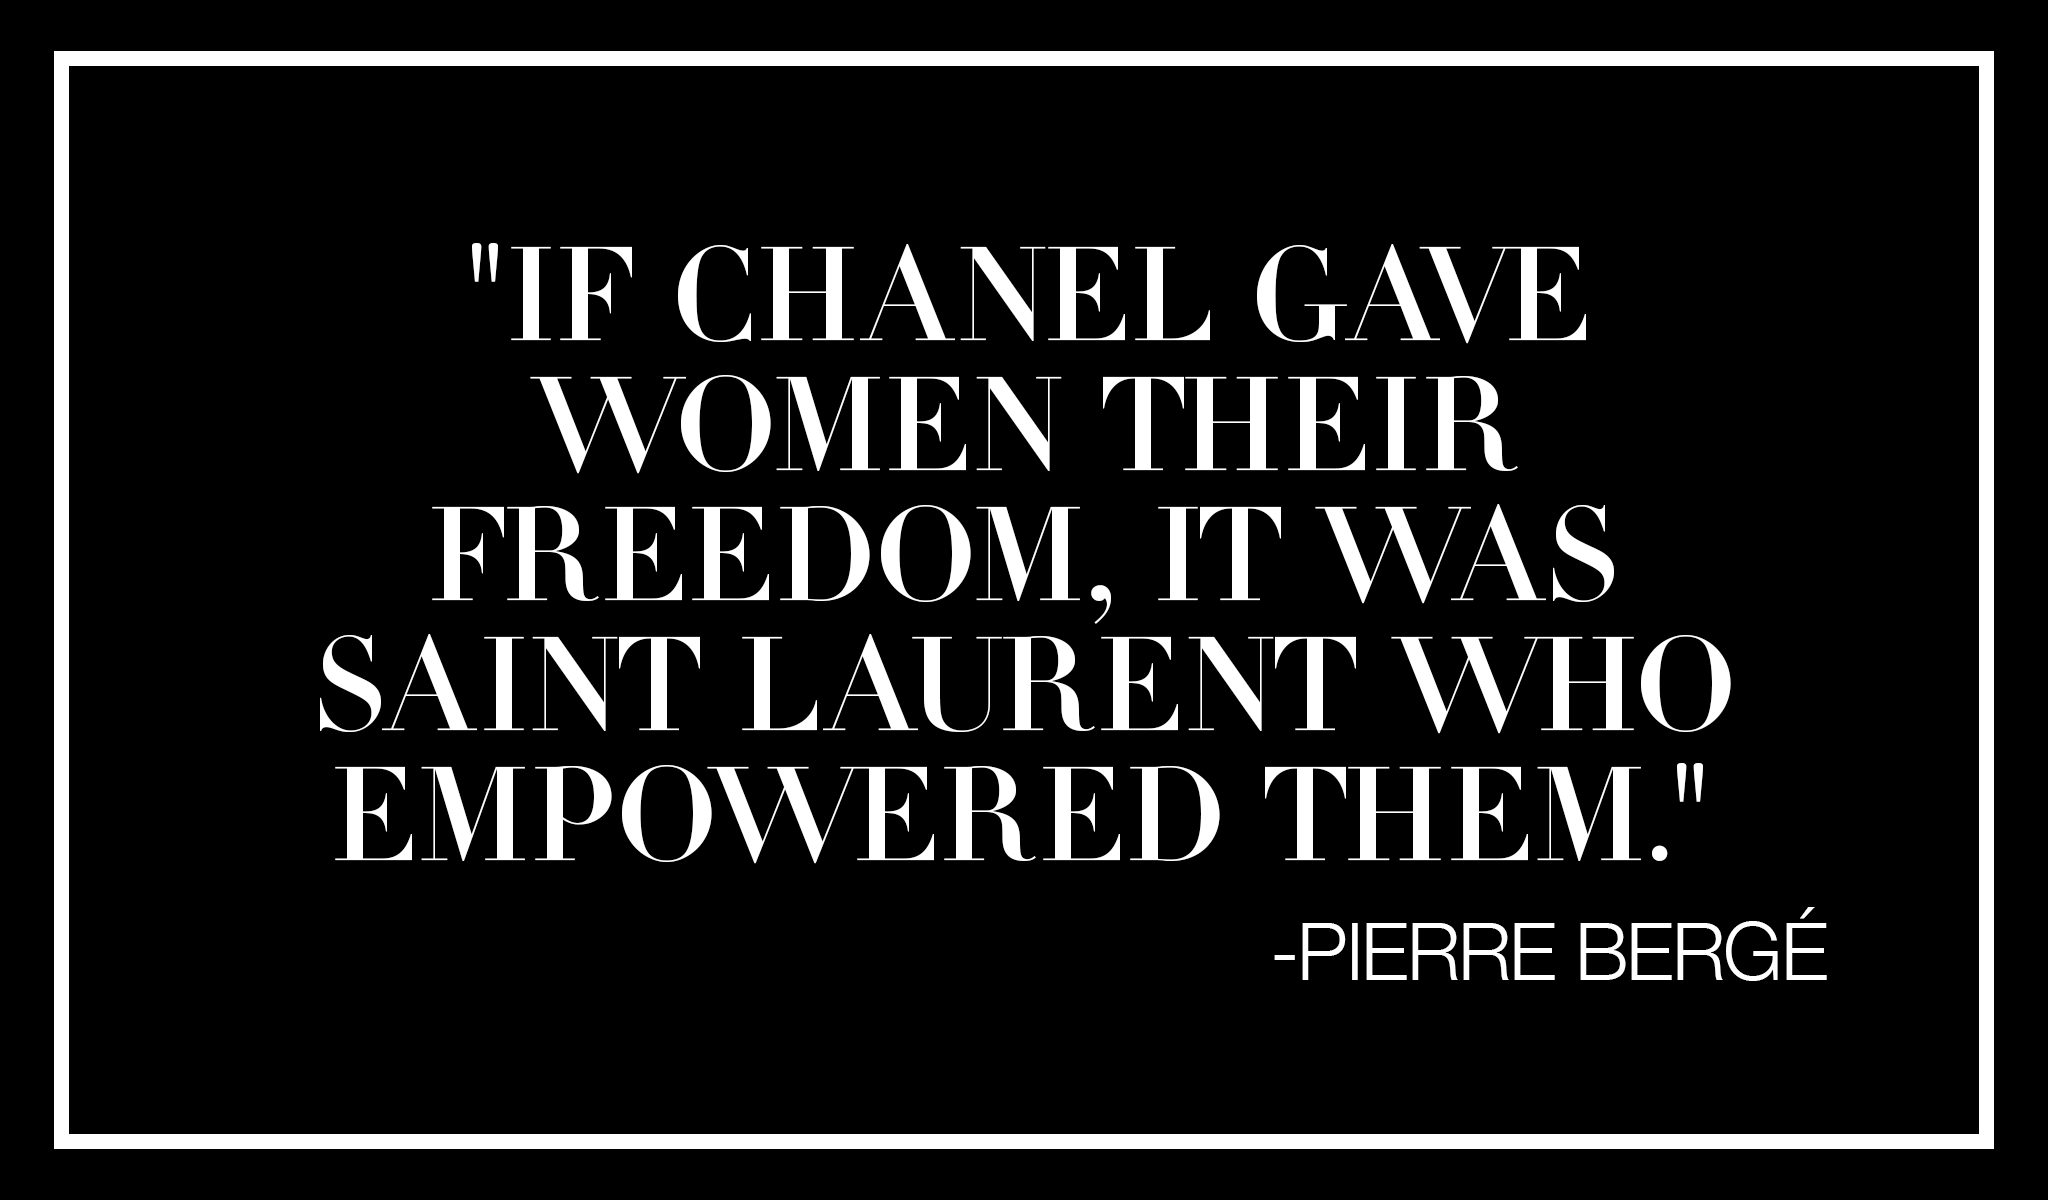 Dress Code Recess Los Angeles Yves Saint Laurent YSL QUOTES freedom chanel empowerment